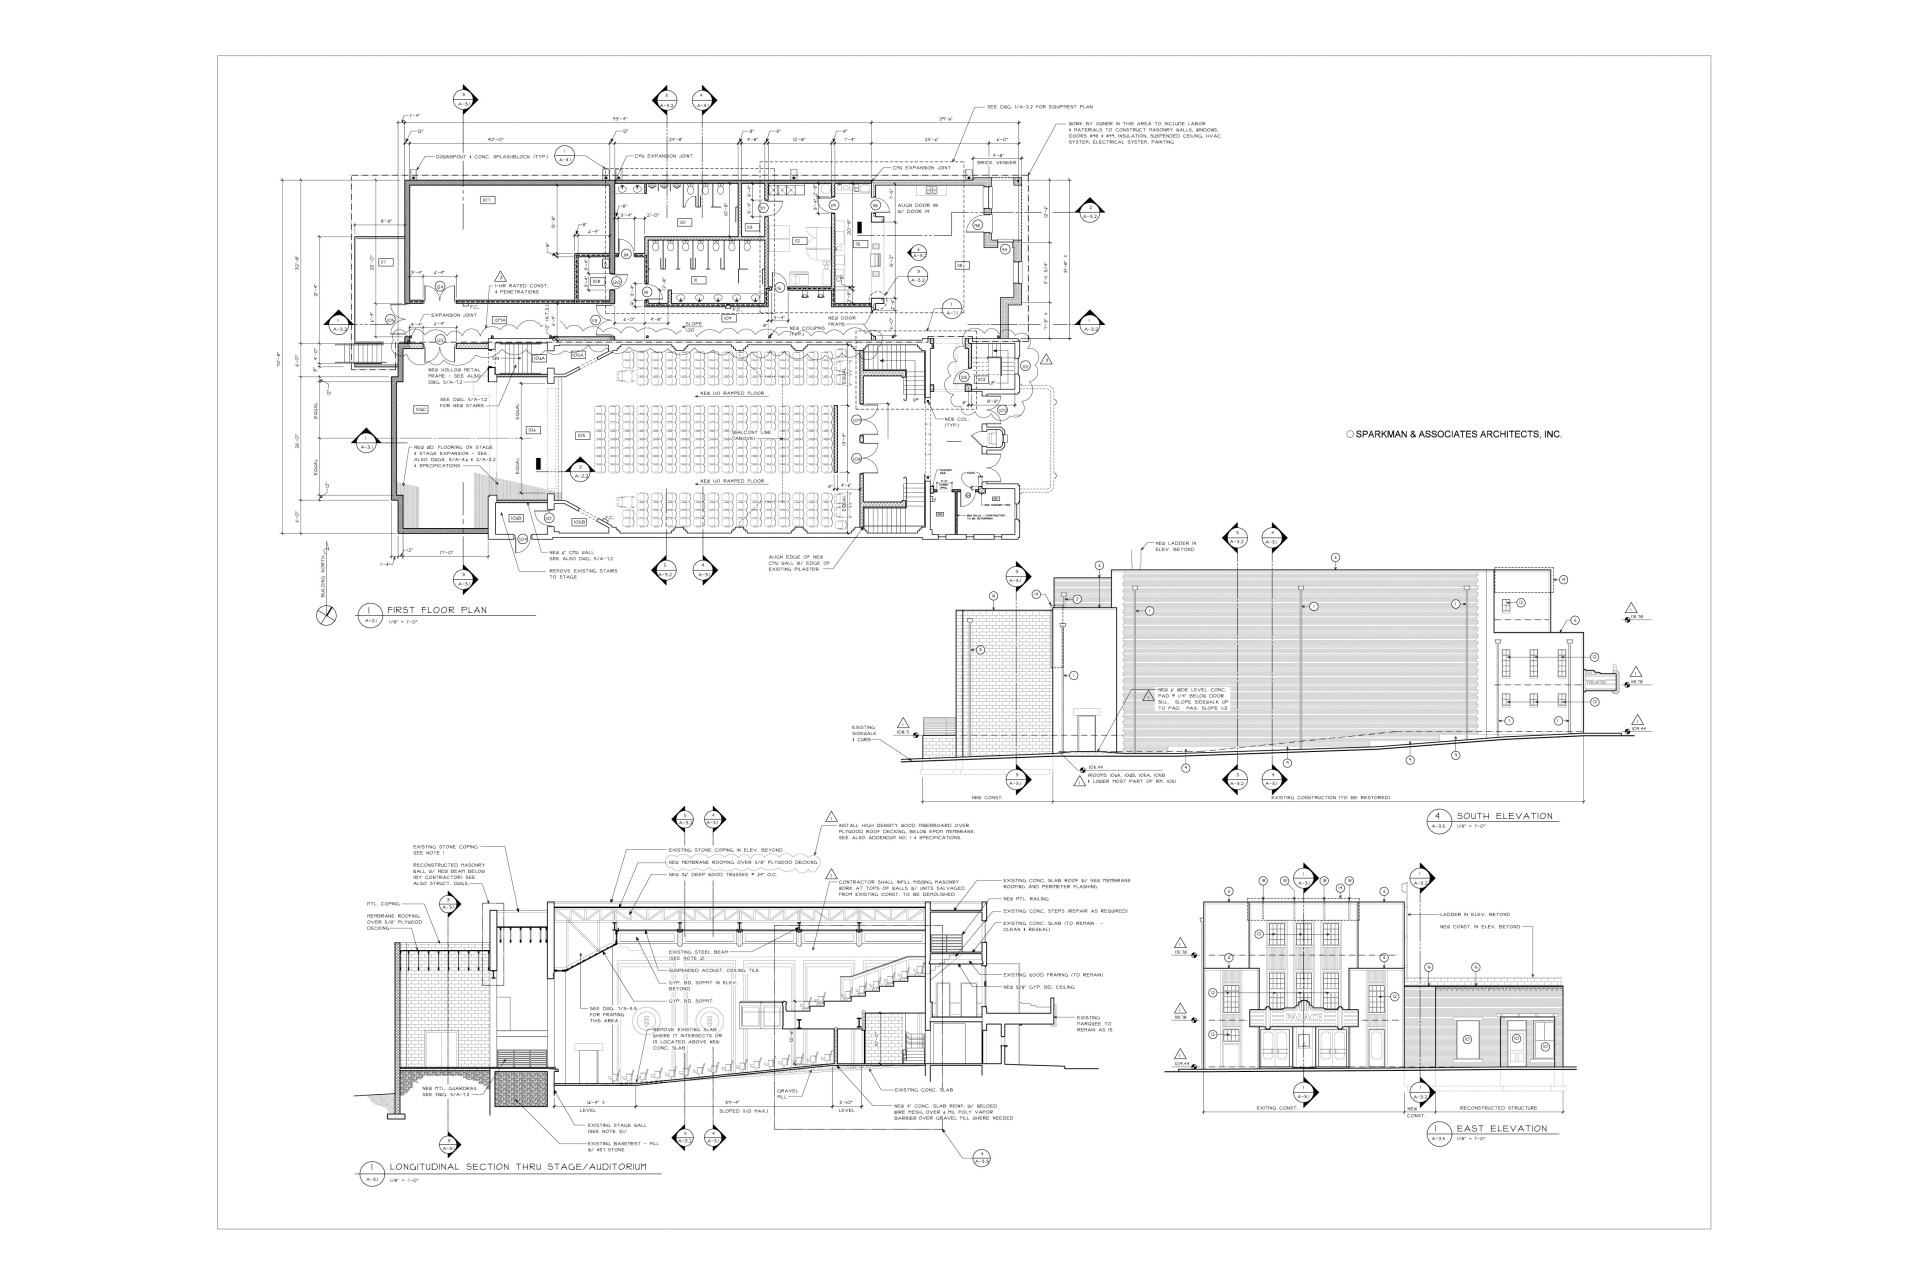 Renovation working drawings